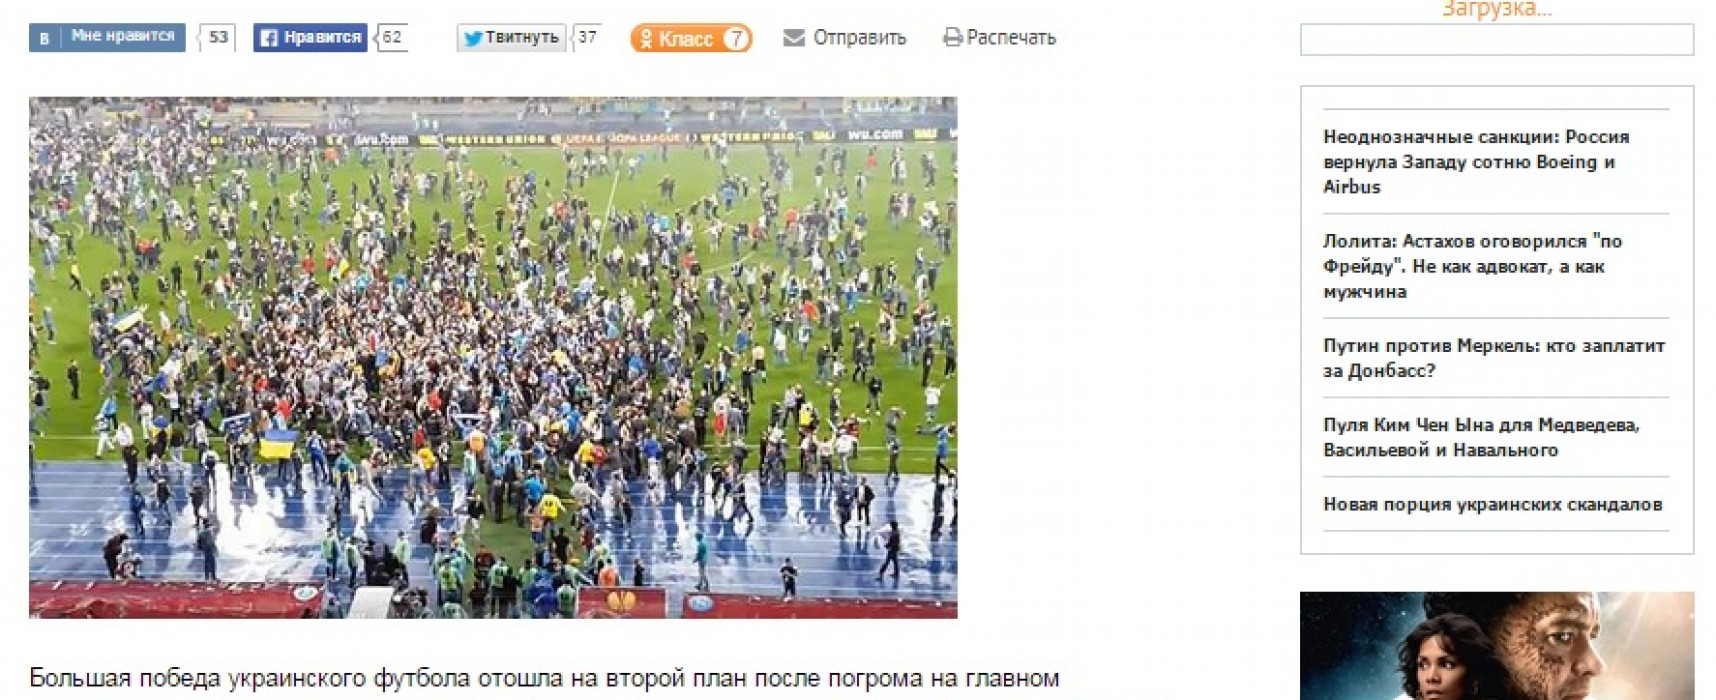 Fake: Dnipro Fans Vandalize Olympic Stadium in Kyiv